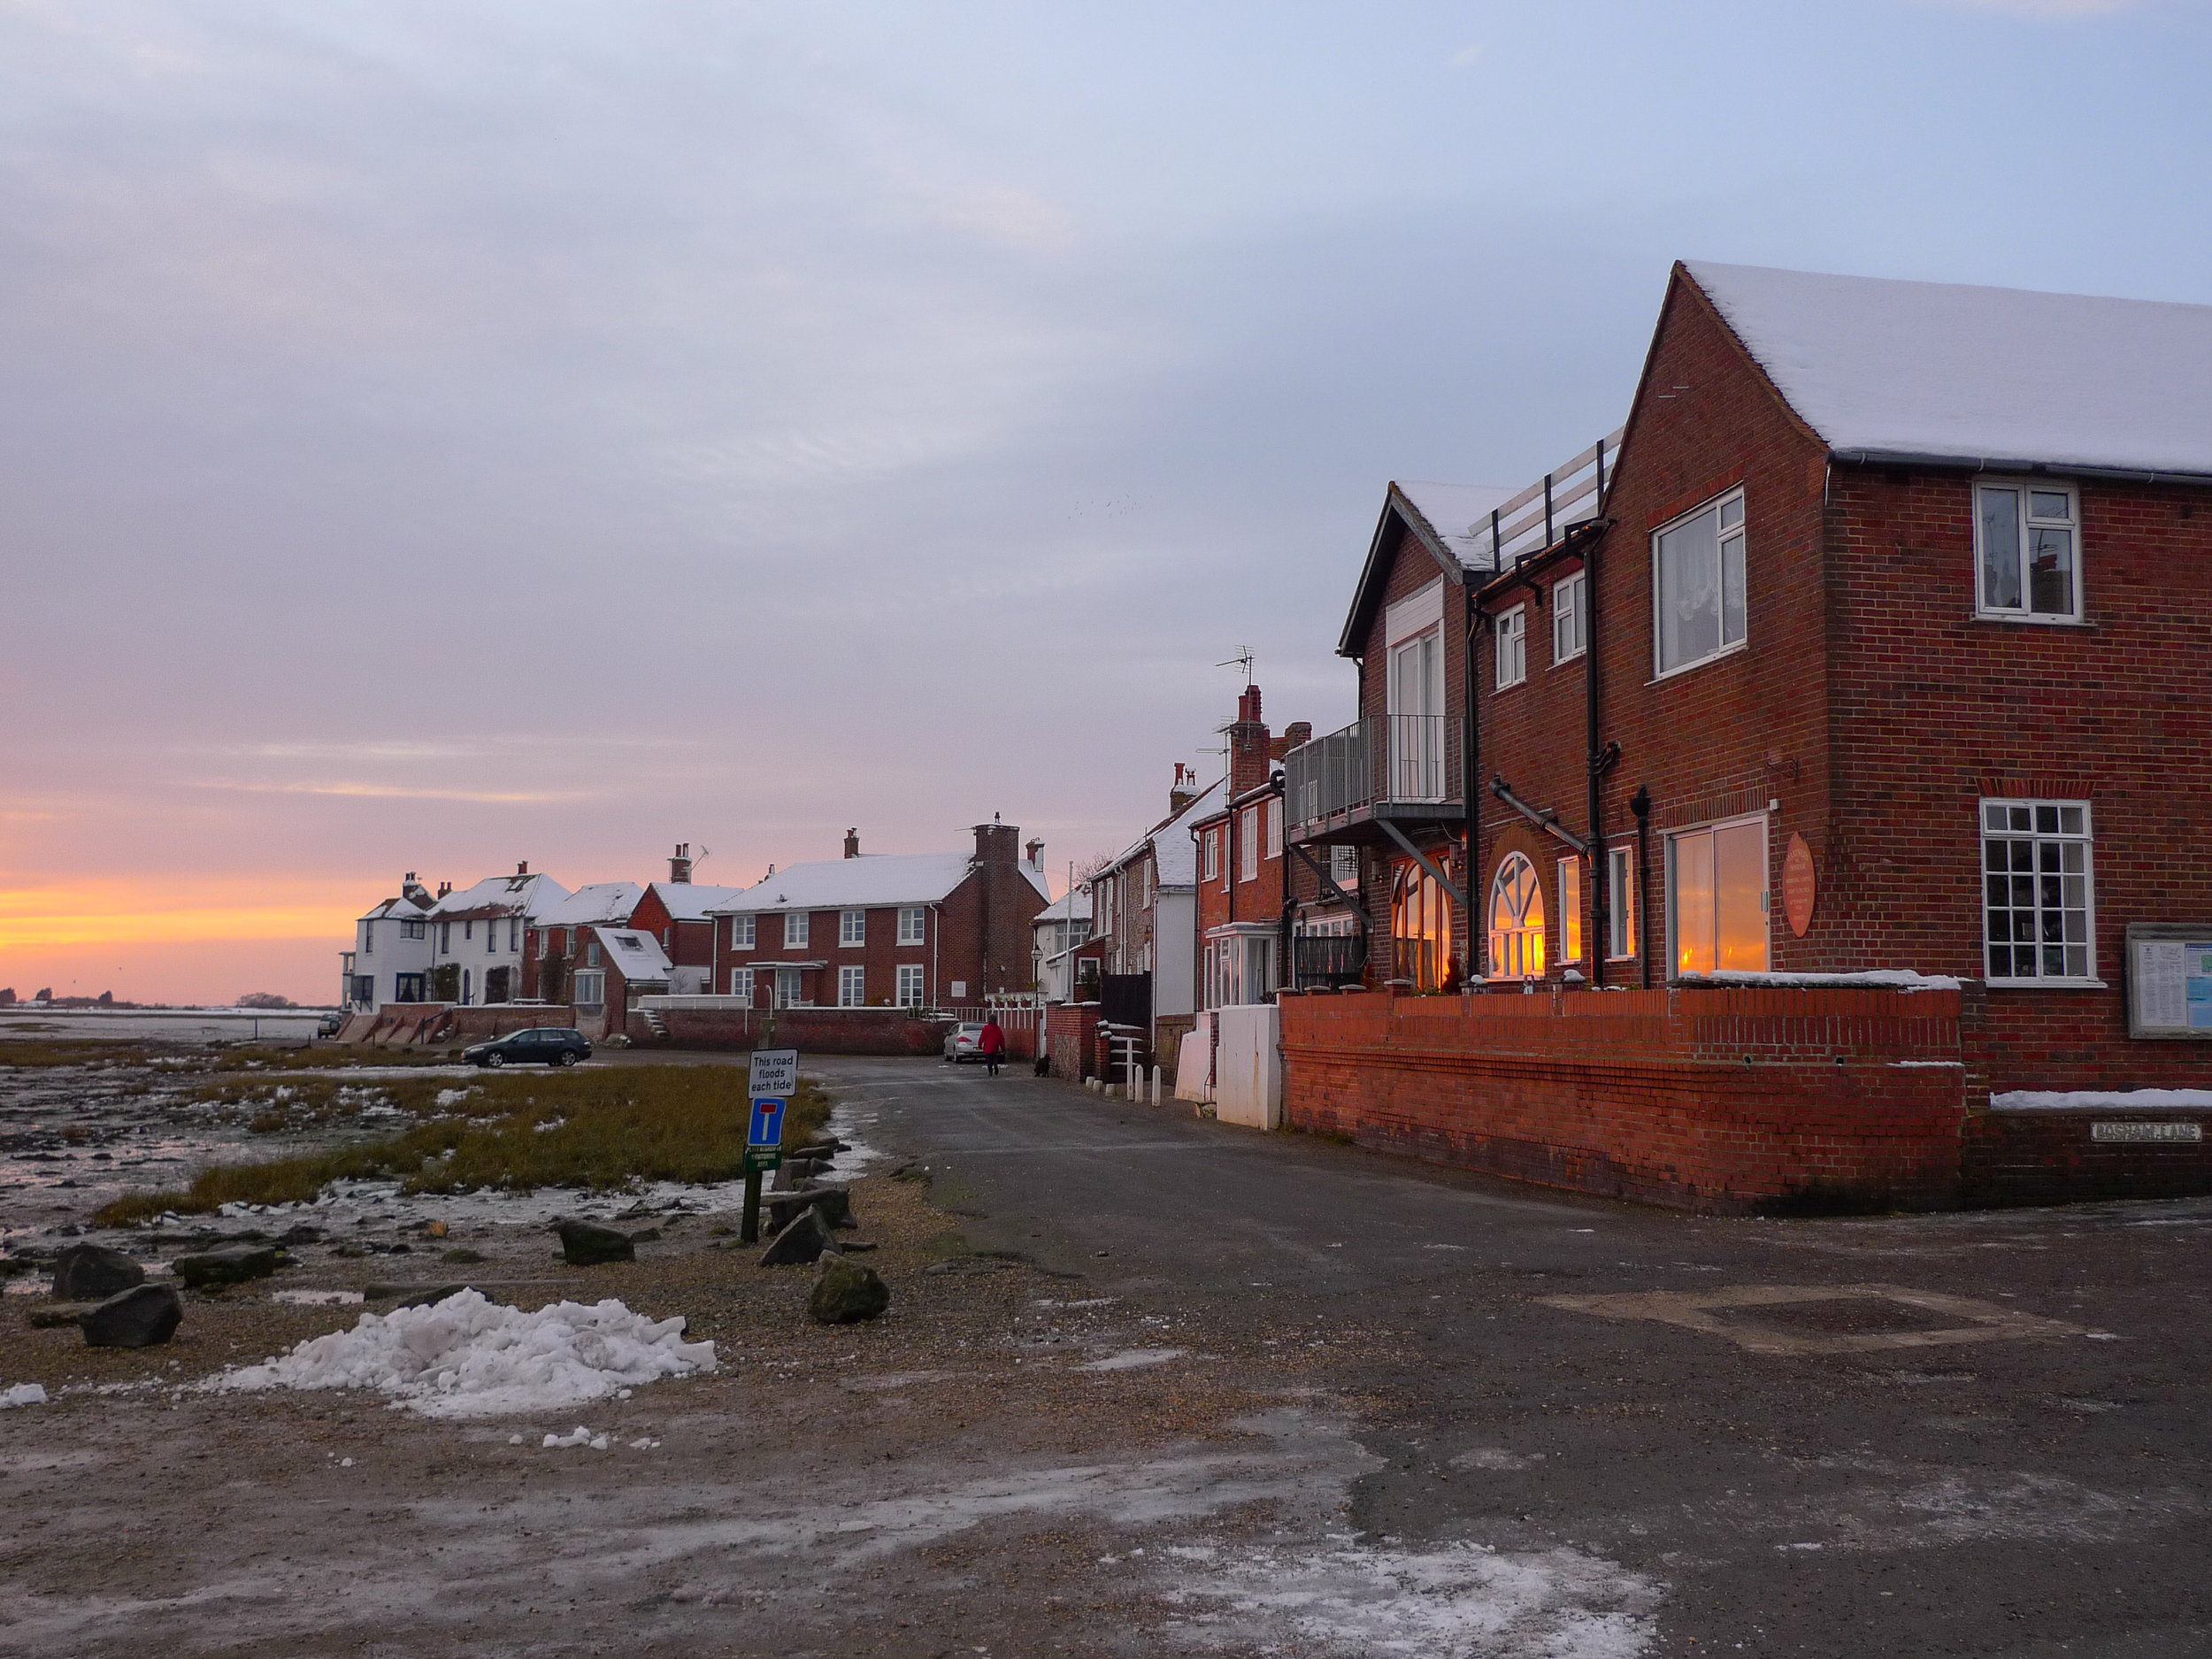 Winter - no parking at high tide!